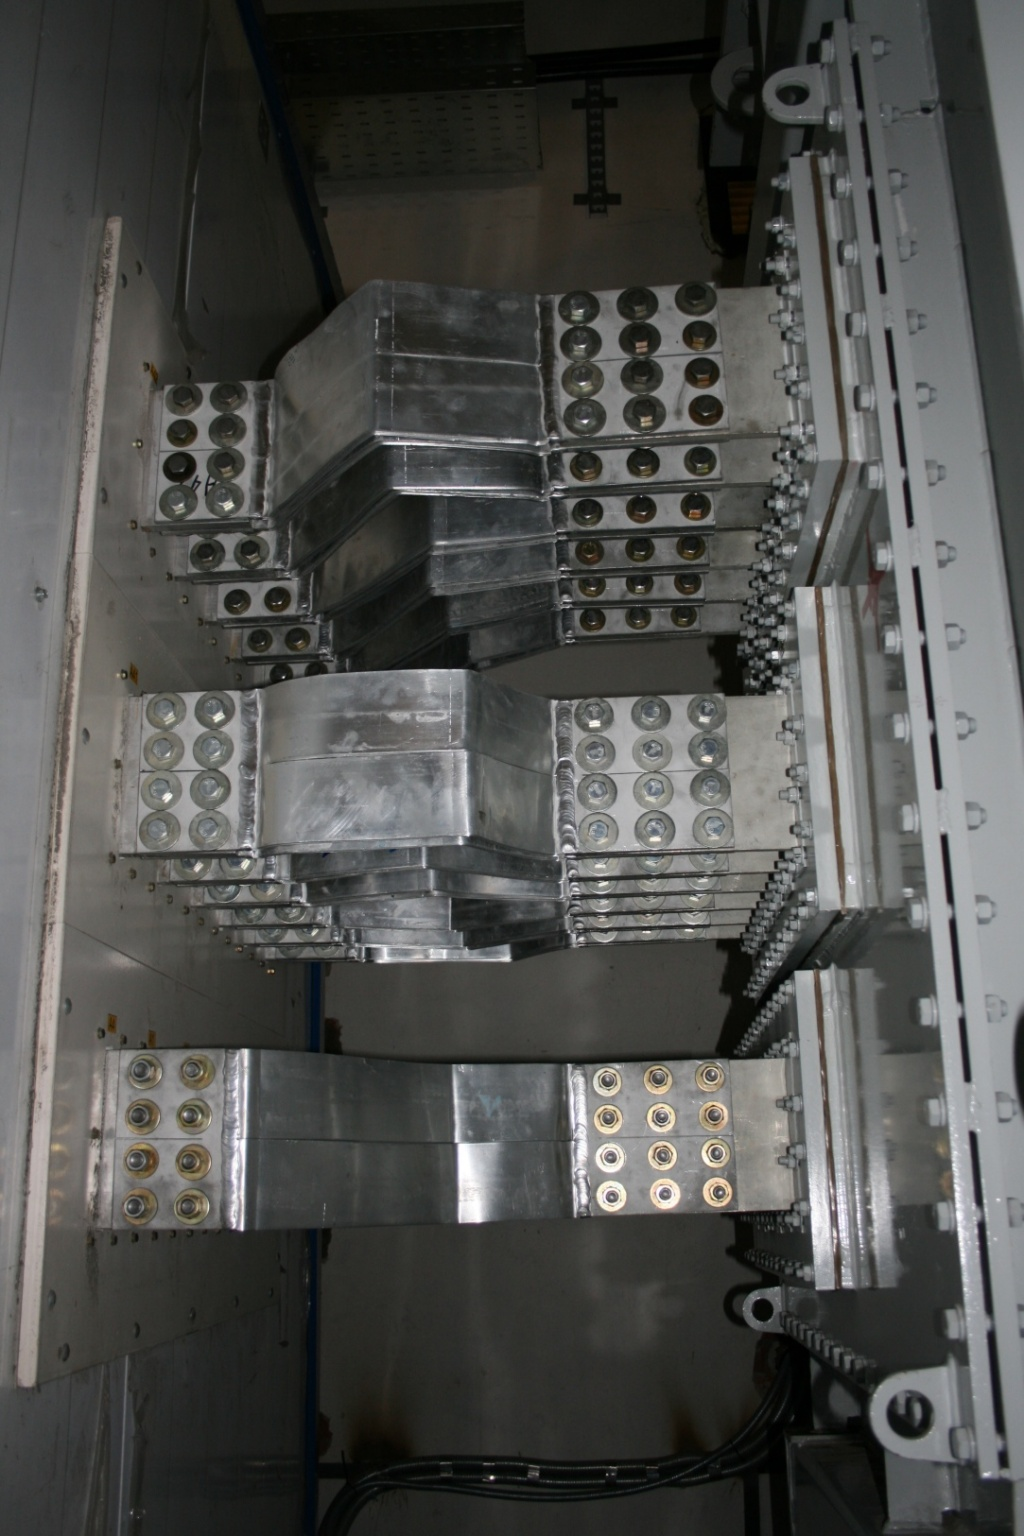 Copper and aluminium bus bars for currents up to a